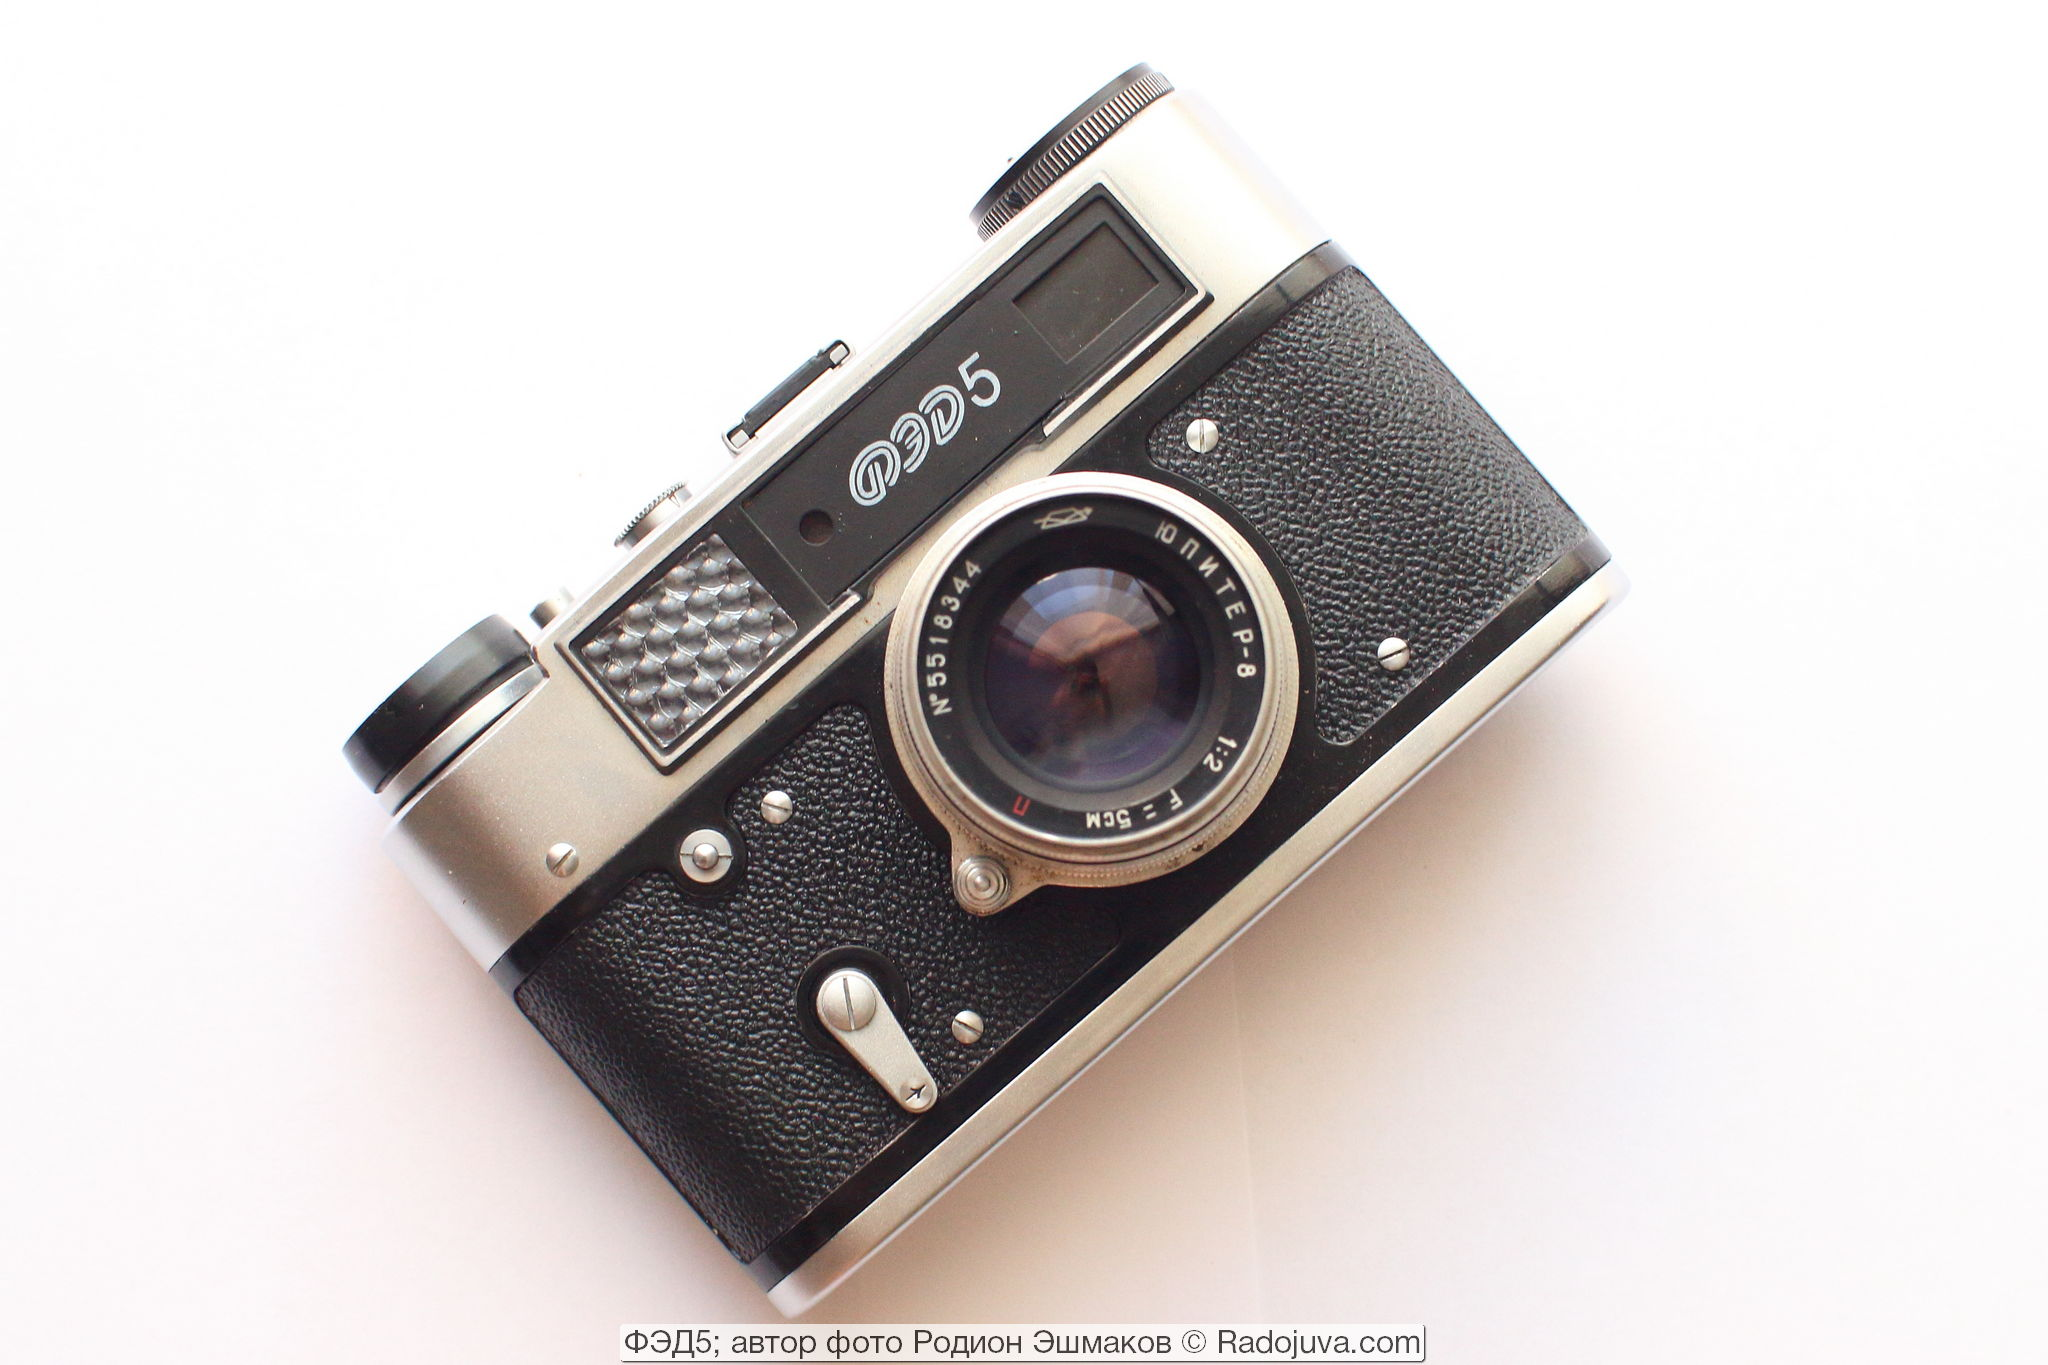 Appearance of the FED-5 camera with the Jupiter-8 lens